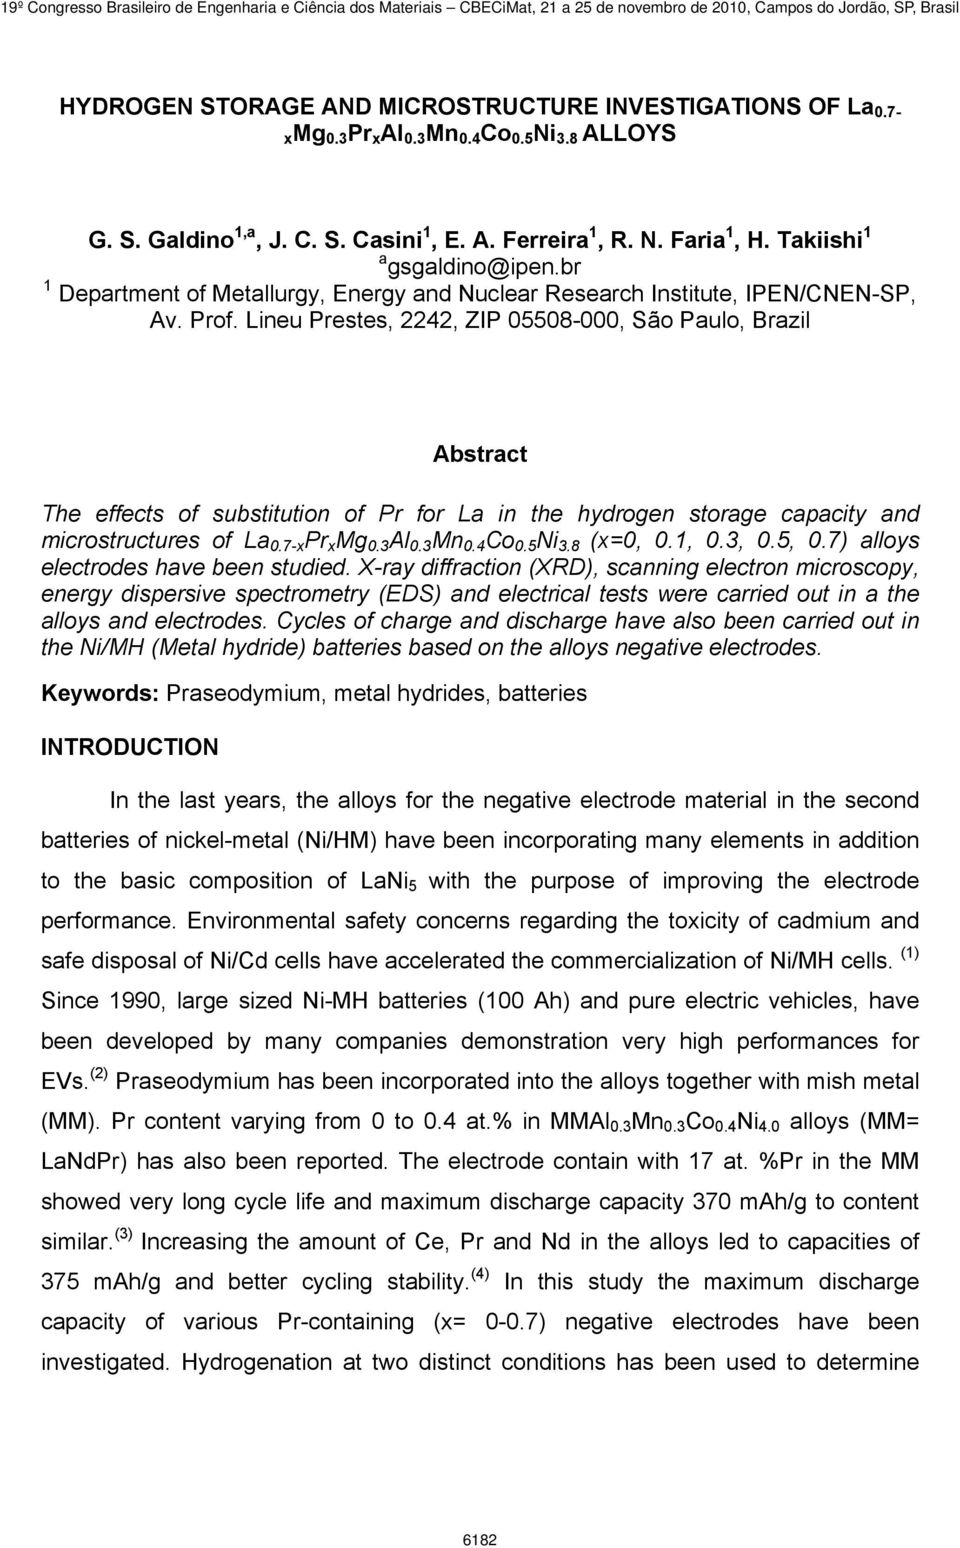 Lineu Prestes, 2242, ZIP 05508-000, São Paulo, Brazil Abstract The effects of substitution of Pr for La in the hydrogen storage capacity and microstructures of La 0.7-x Pr x (x=0, 0.1, 0.3, 0.5, 0.